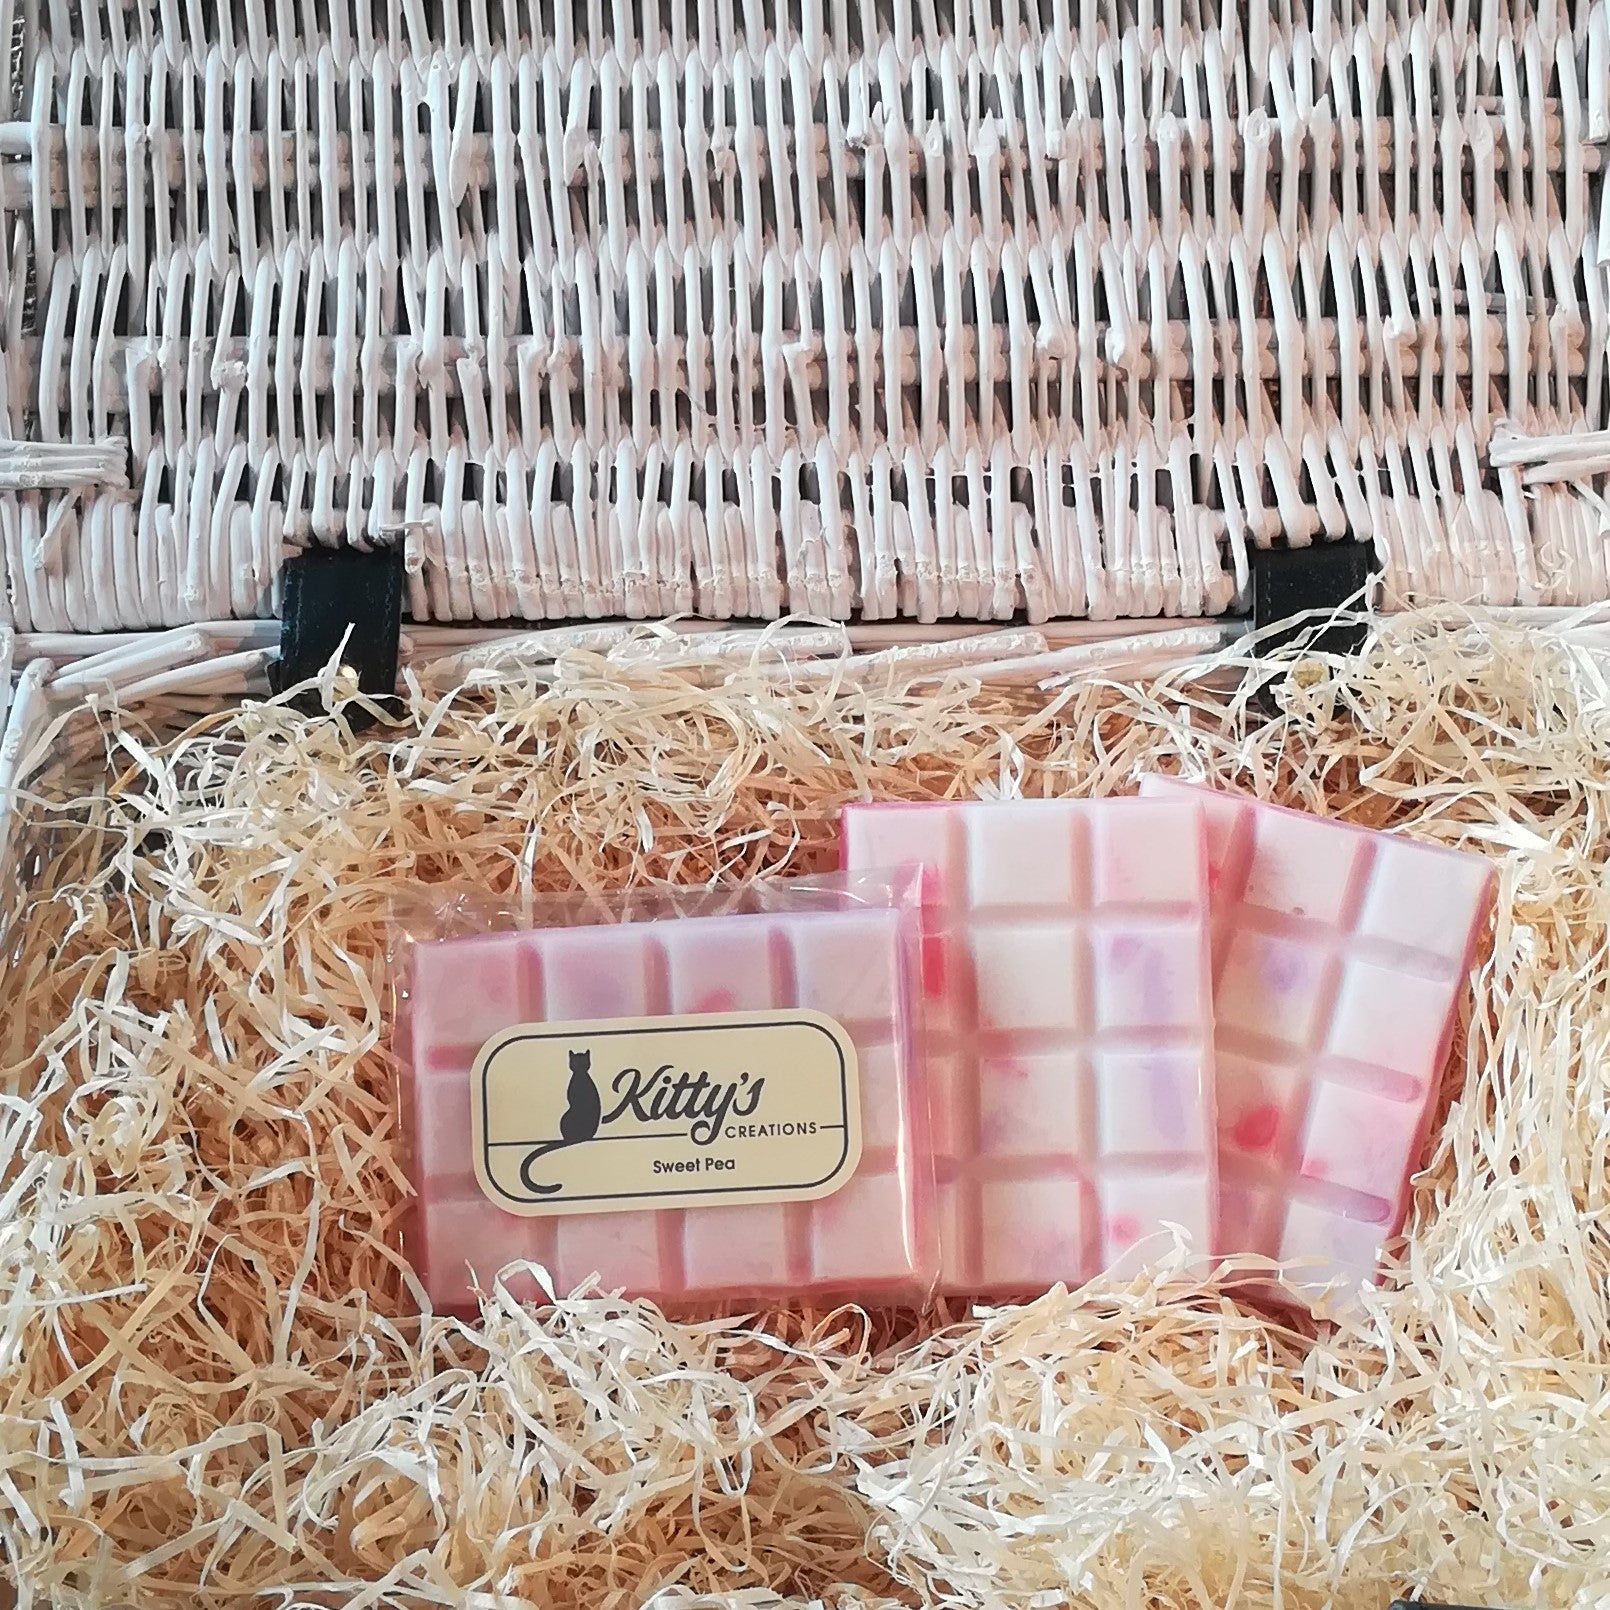 Three hand-made rectangular Wax Melts. Each is white Soy wax, coloured with gentle Sweet Pea marbling patterned in their delicate pink and purple shades, the melts are resting in a basket of straw. Each melt is alive with Sweet Peas, giving you the uplifting fragrance of walking through flowering archways and pergolas.